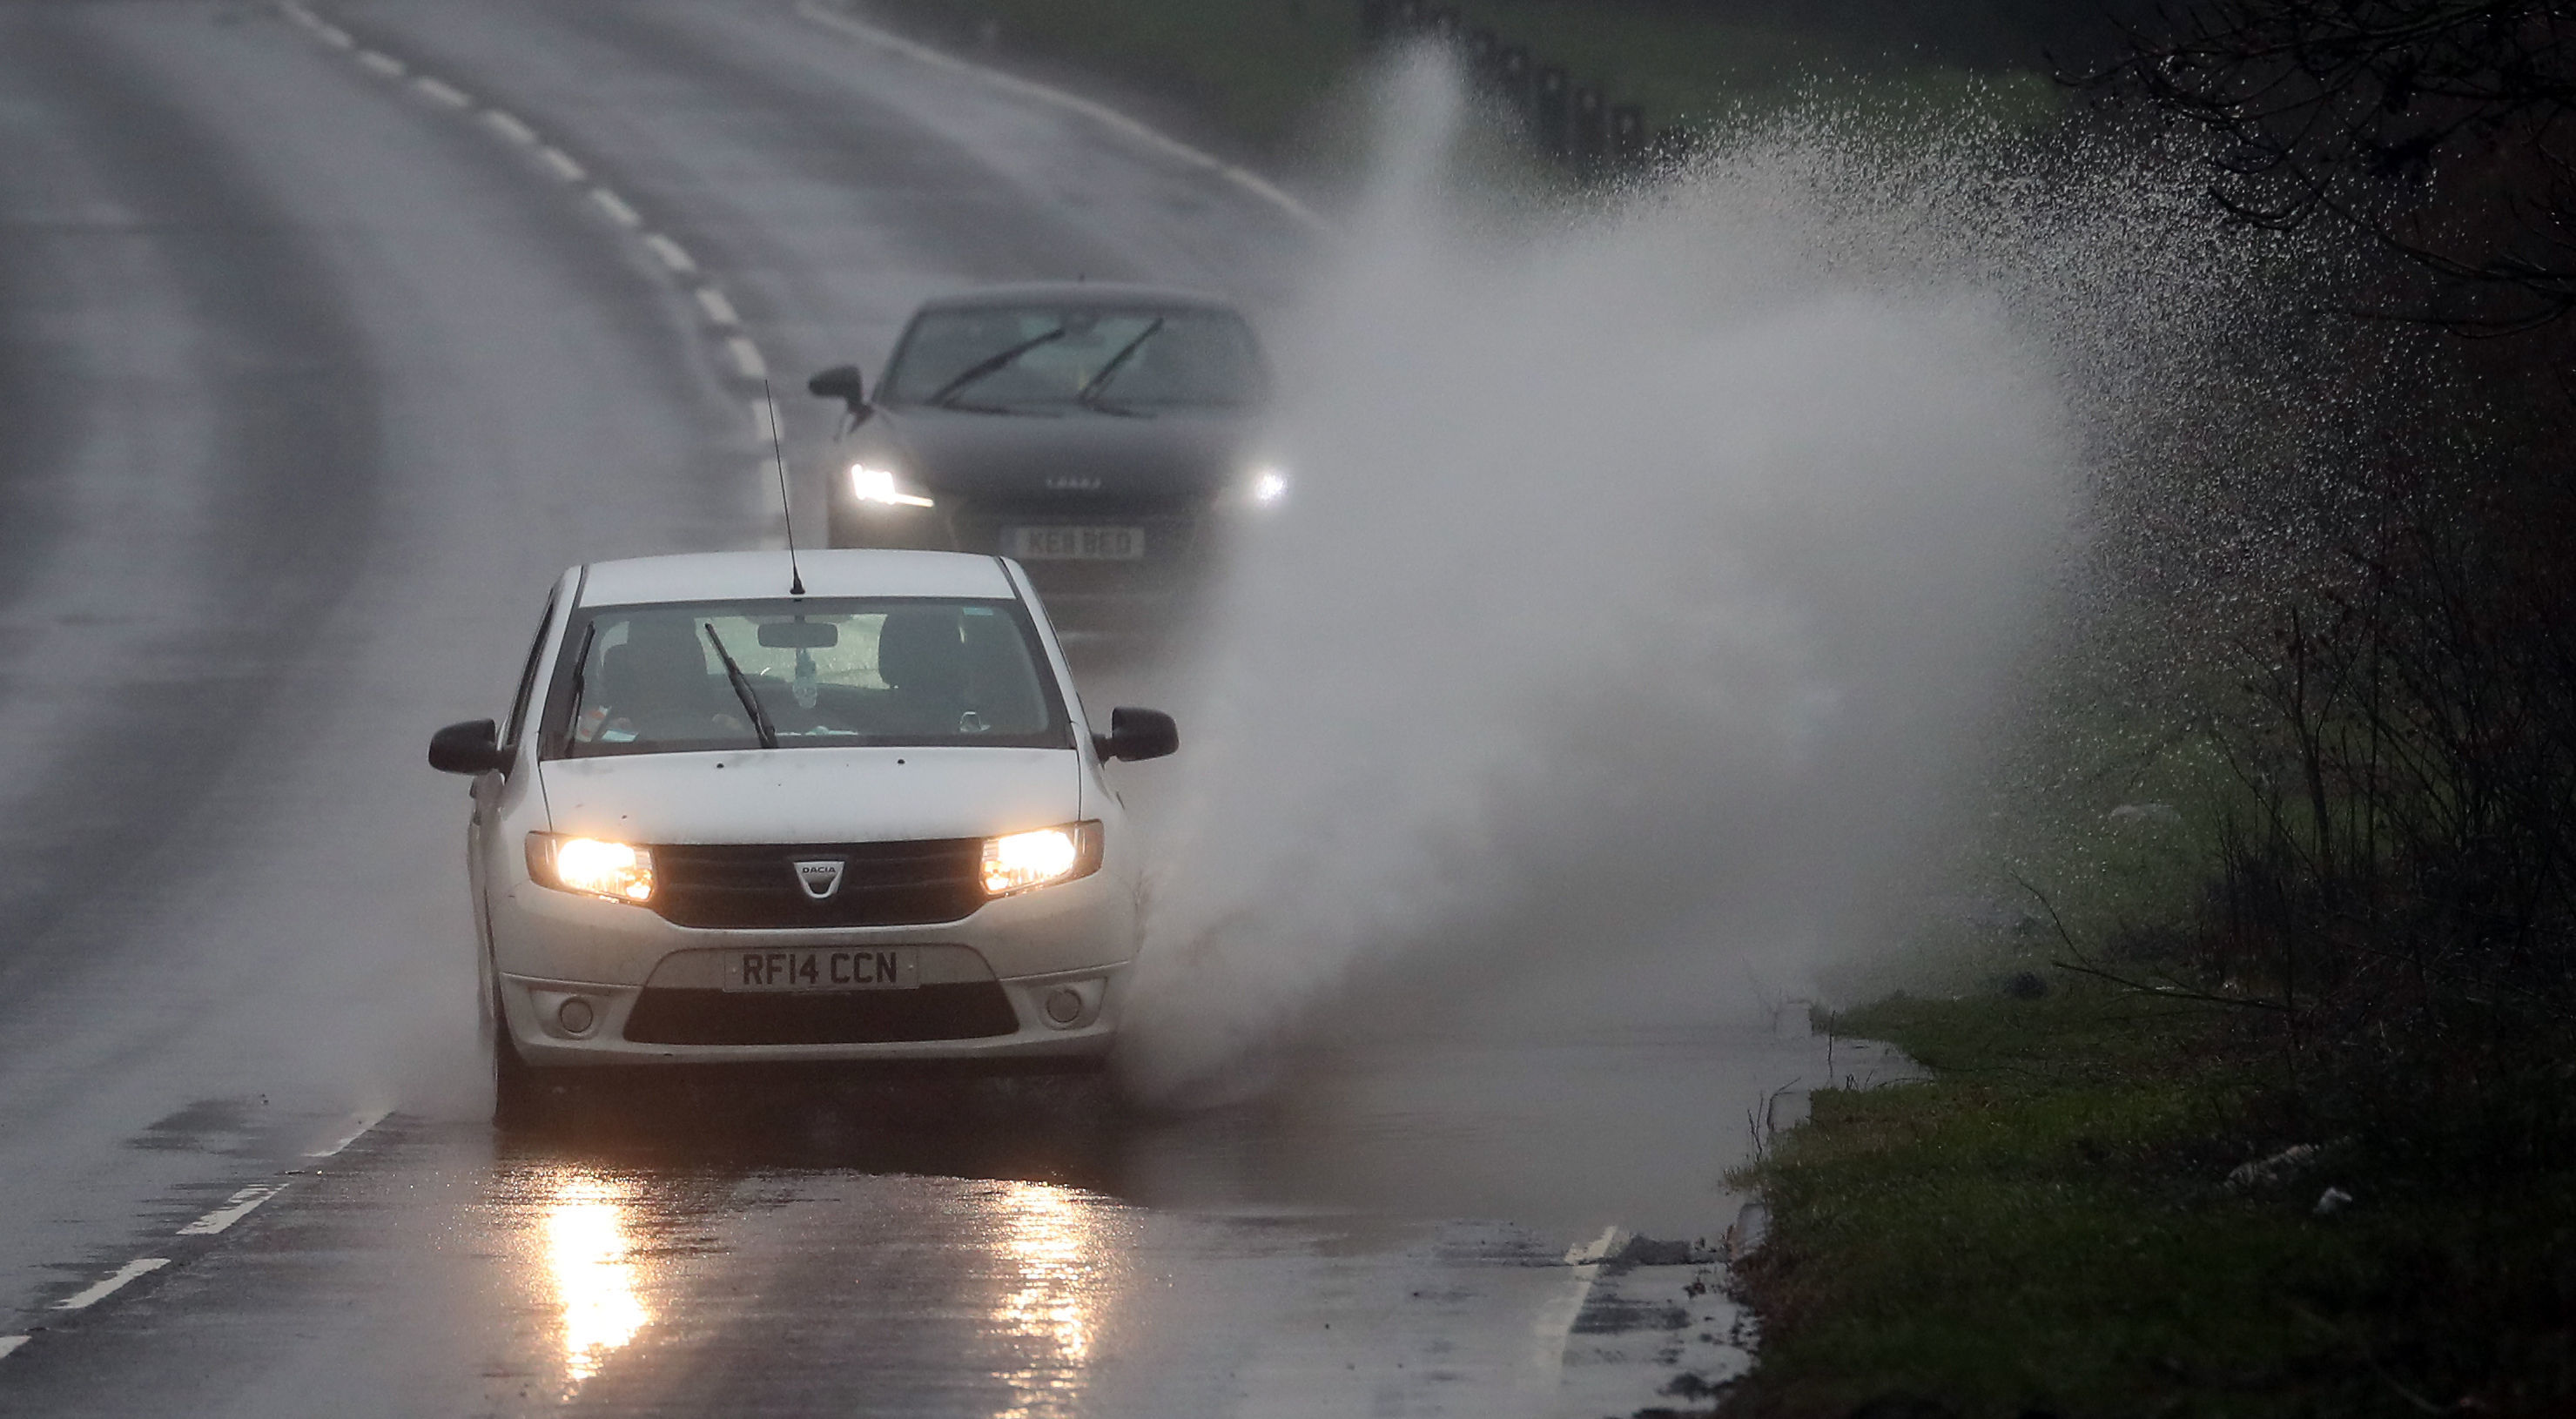 UK weather: Flood warnings as snow gives way to heavy rain